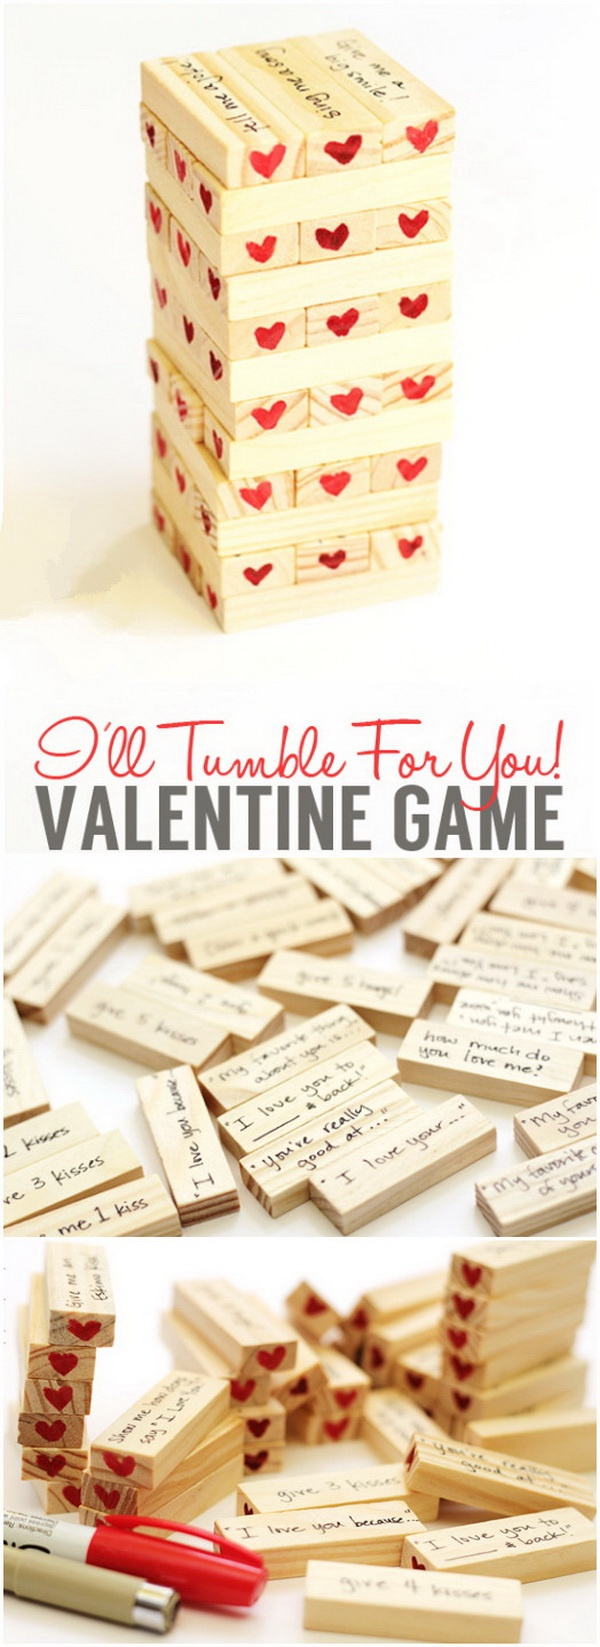 Cute and Easy Valentine's Day DIY Gift Ideas For Him